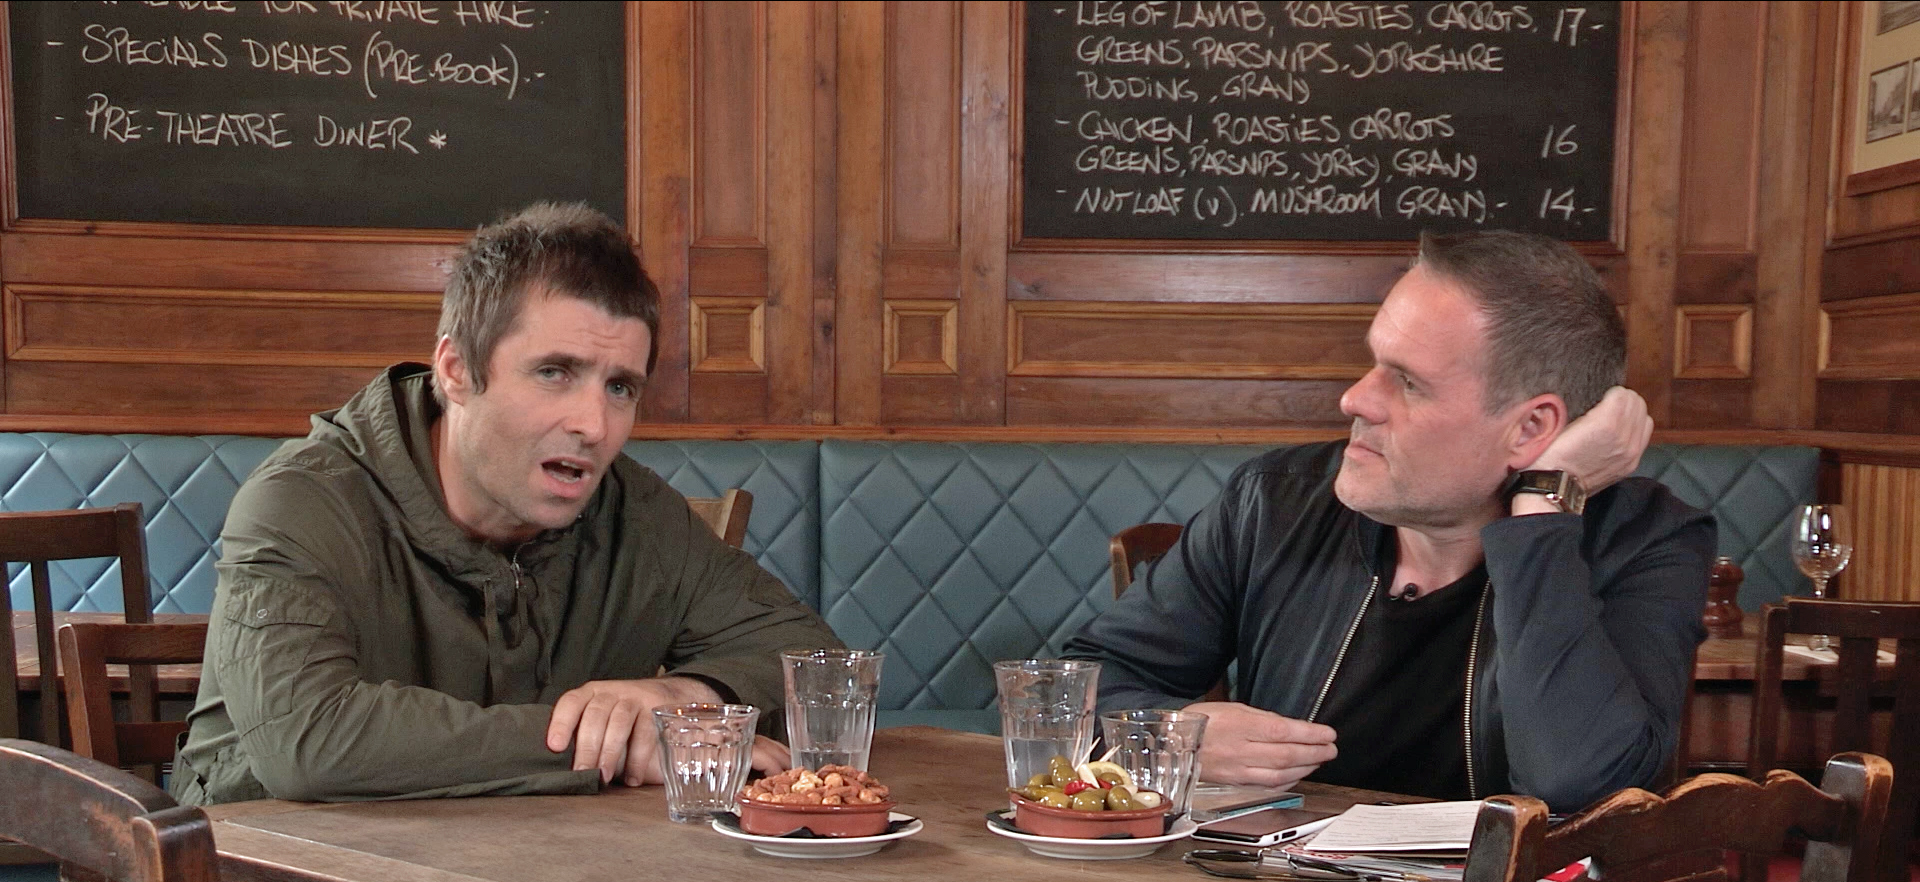 Chris Moyles and Liam Gallagher